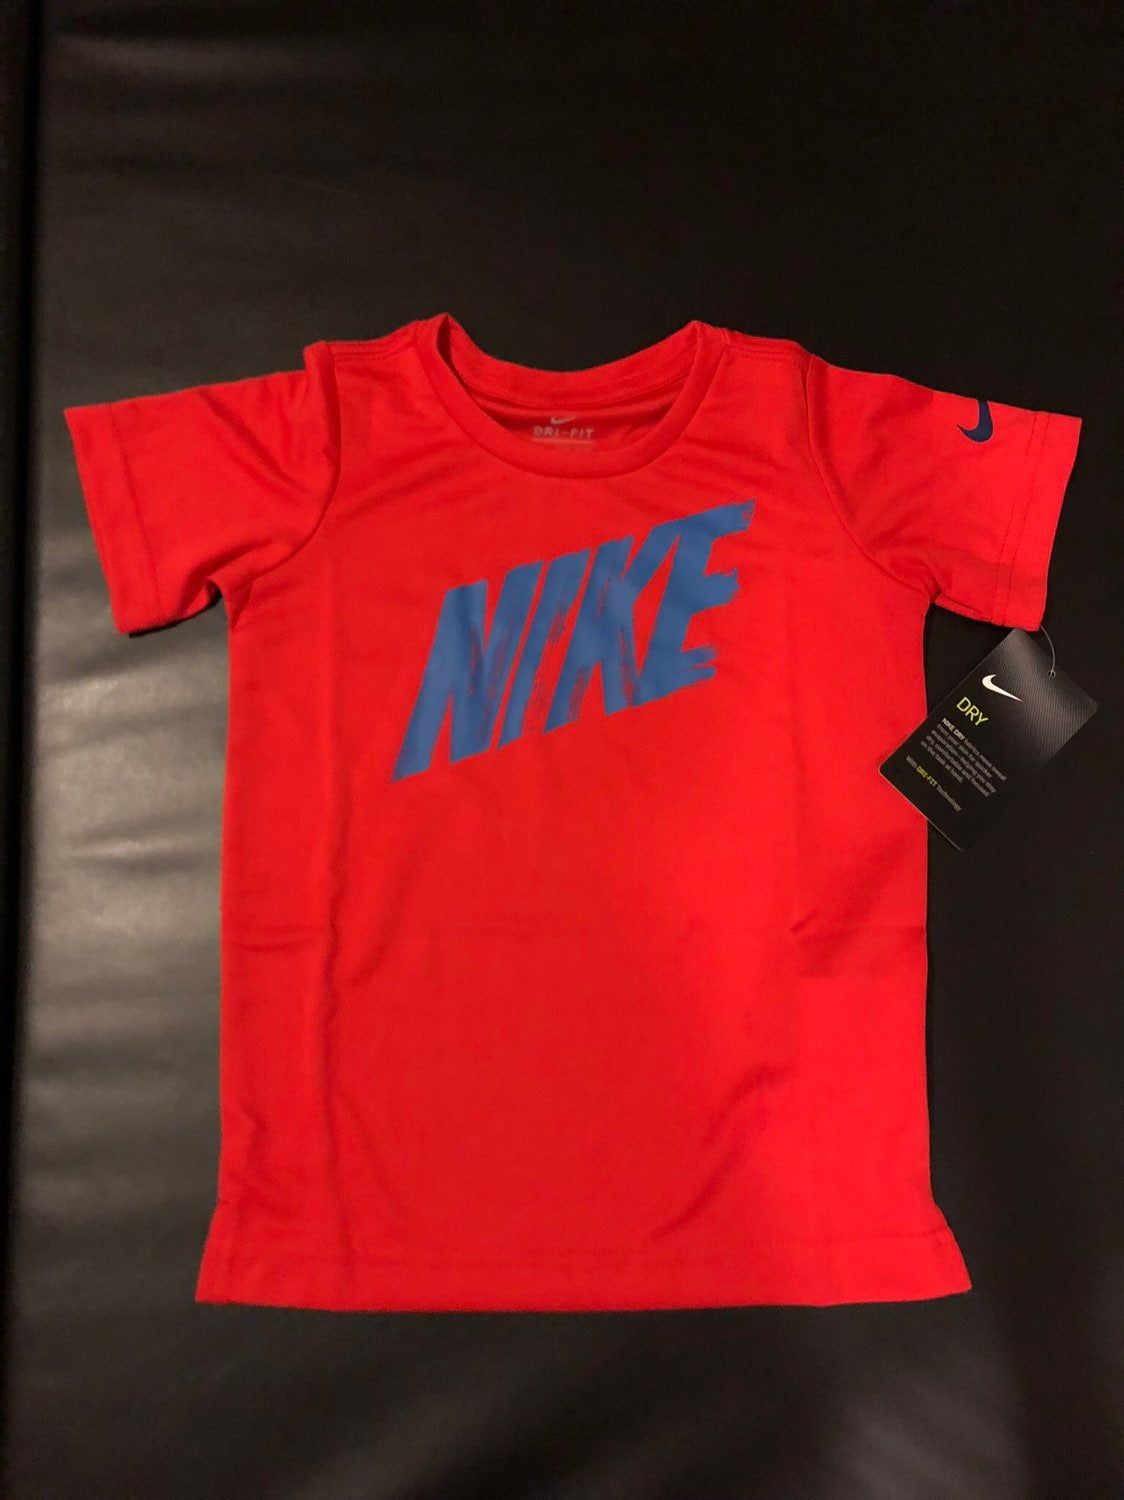 BOYS NIKE SHIRT T-SHIRT 2T 3T SHORT SLEEVE NEW NWT